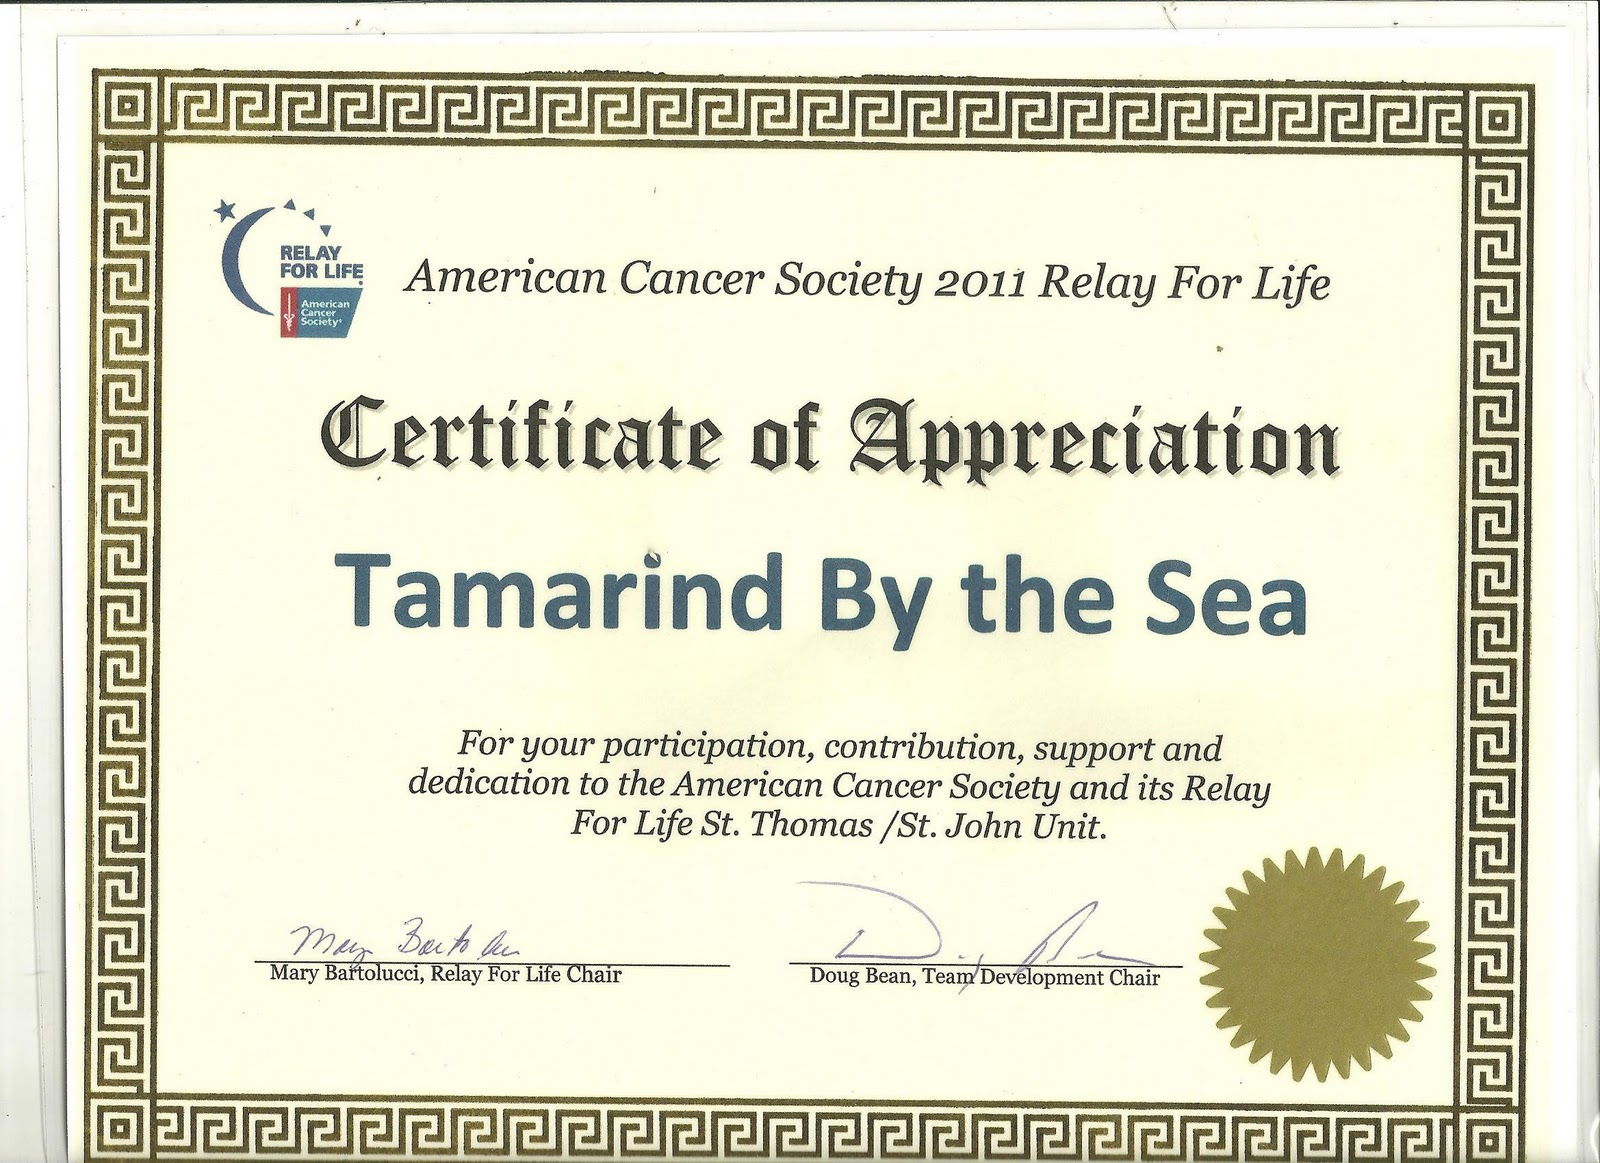 Sadie Sealove City Charters Relay For Life Certificate Of Appreciation